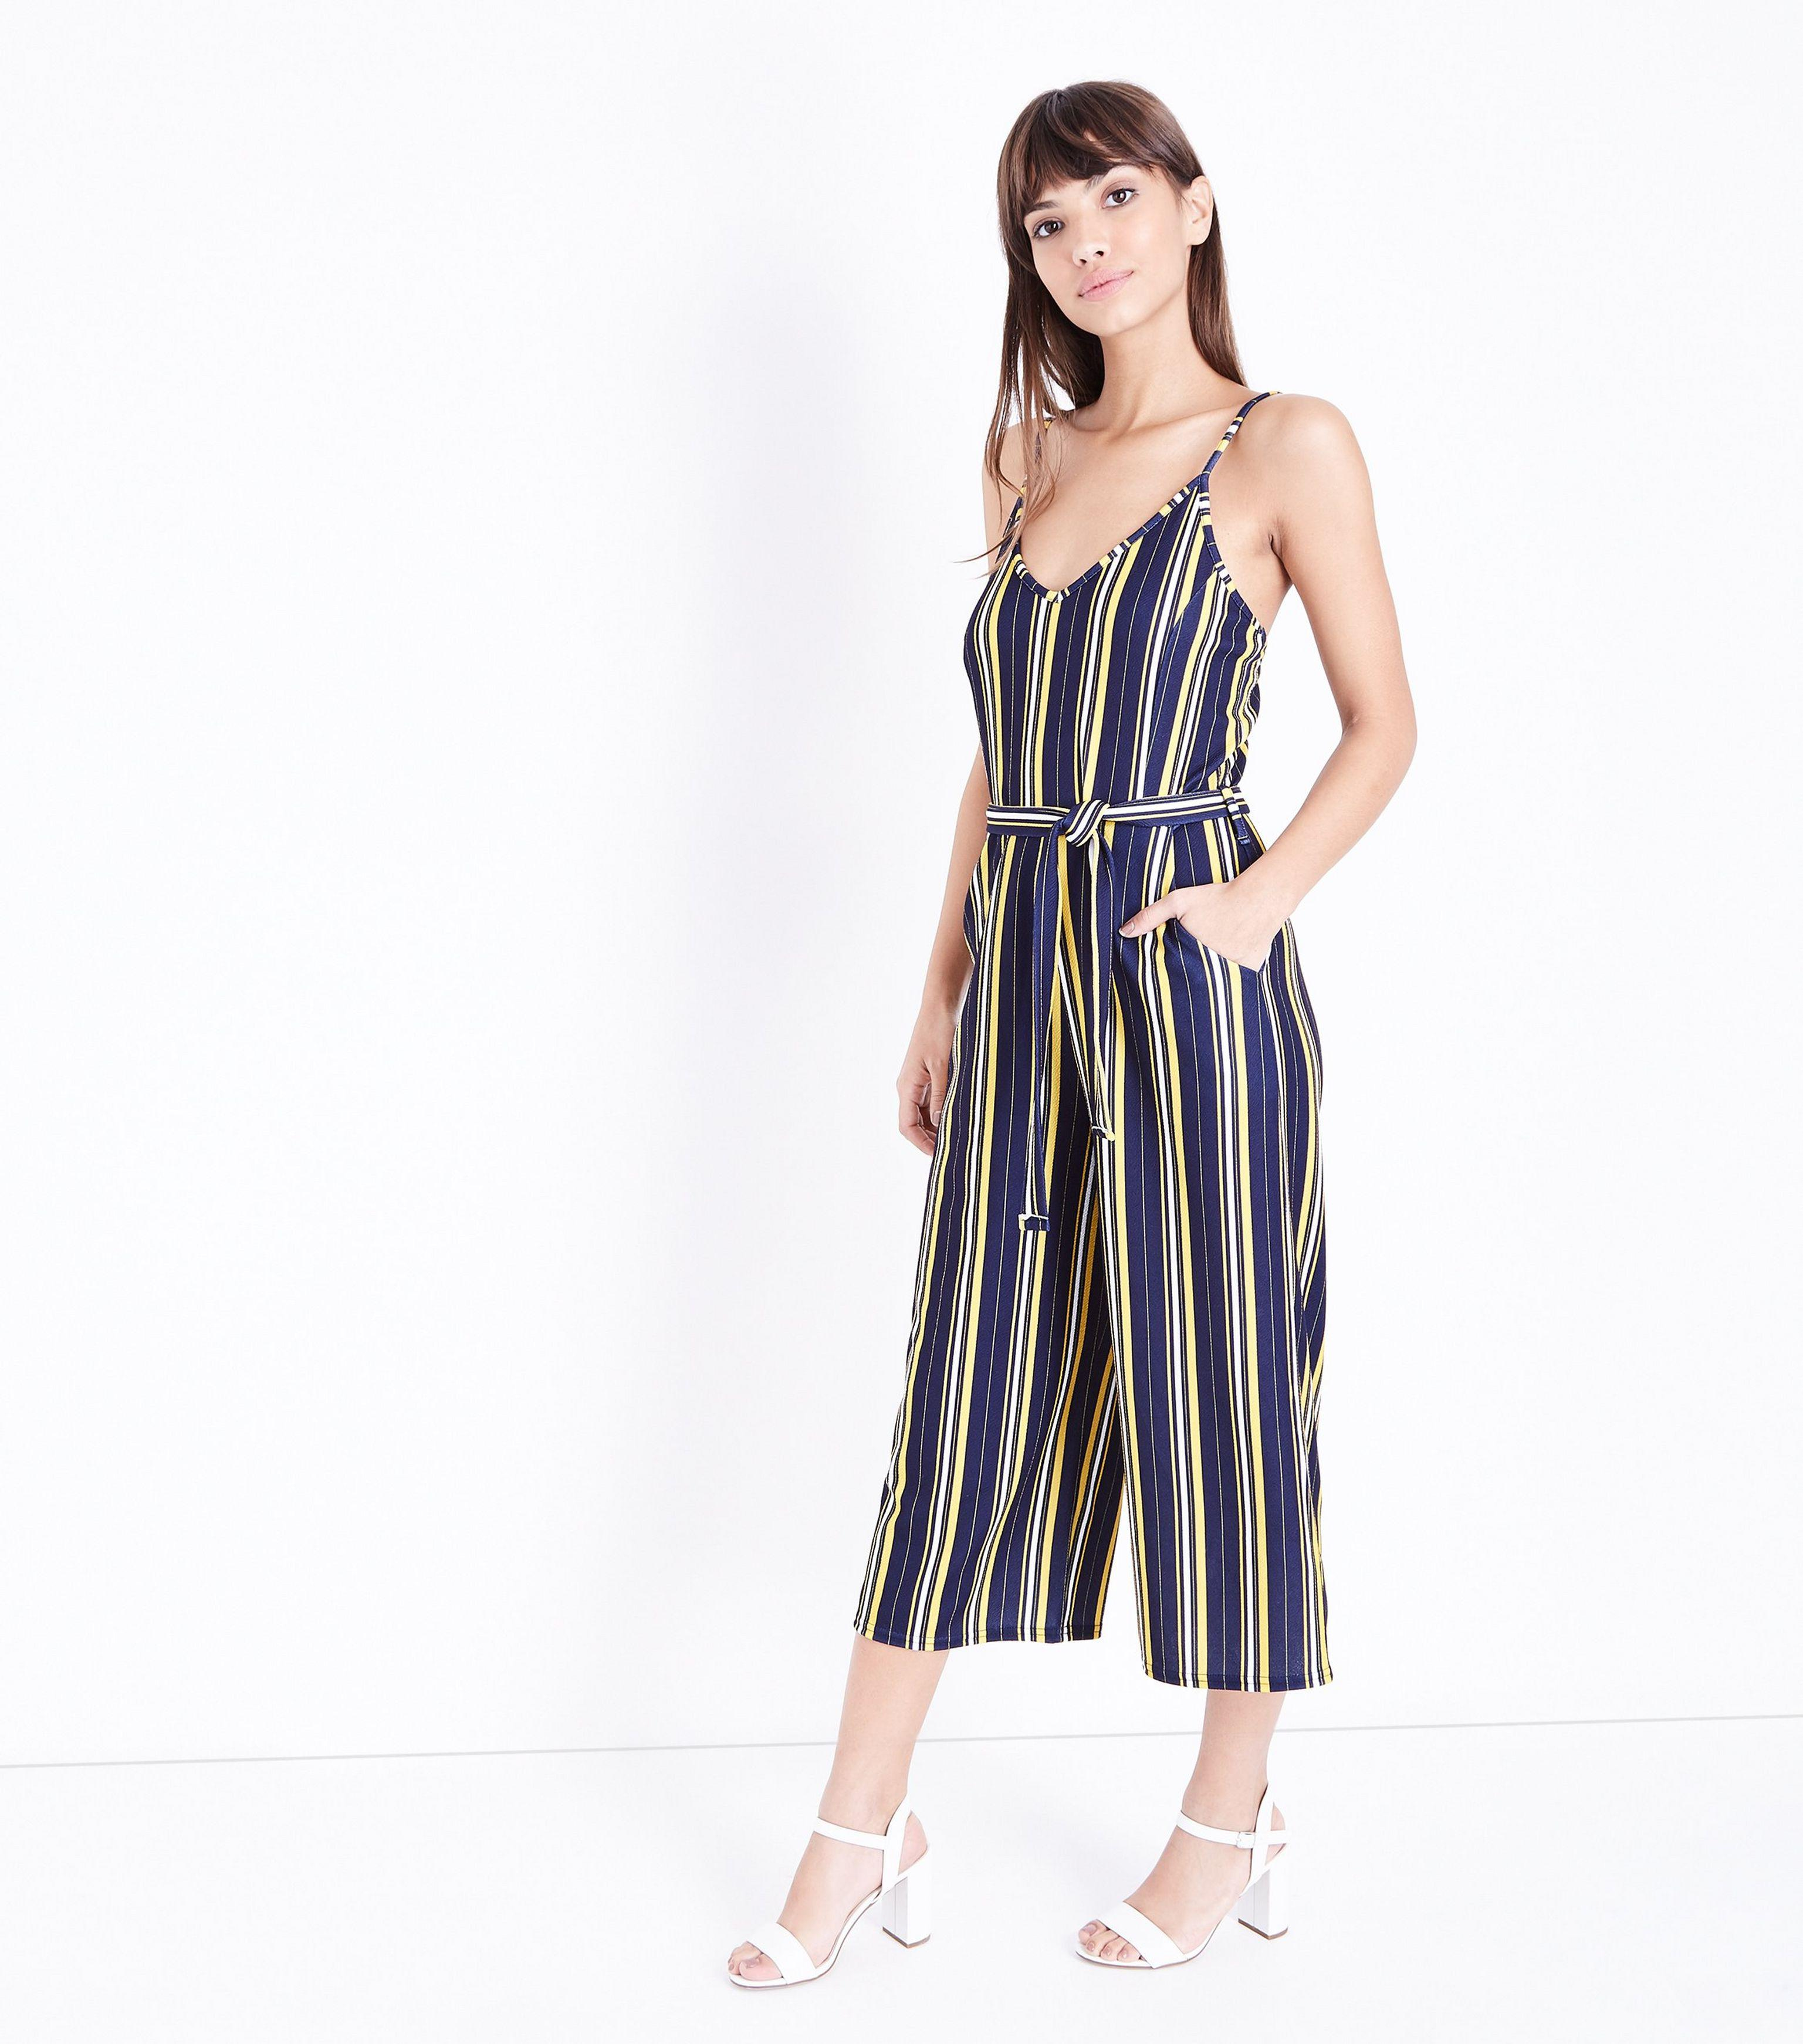 c68700b764c4 New Look Navy Stripe V Neck Culotte Jumpsuit in Blue - Lyst